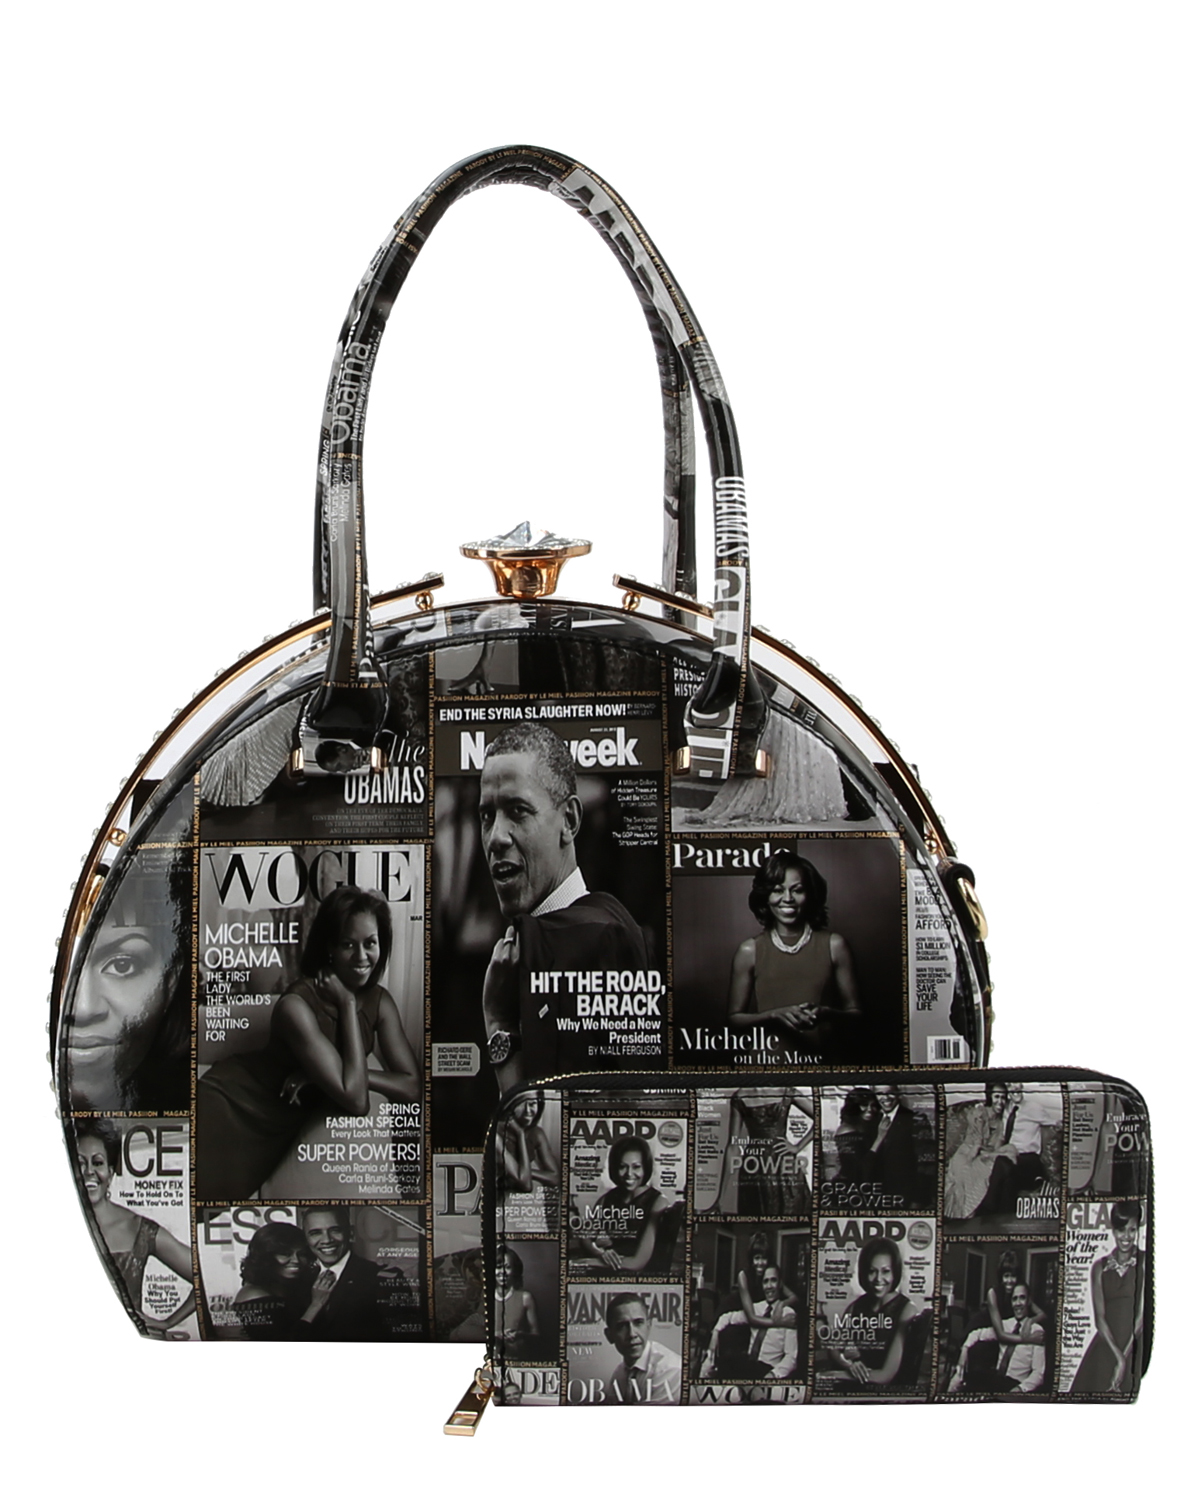 ff1cc3f4017 Get Incredible Discount Prices on our Wholesale Fashion Handbags Today!